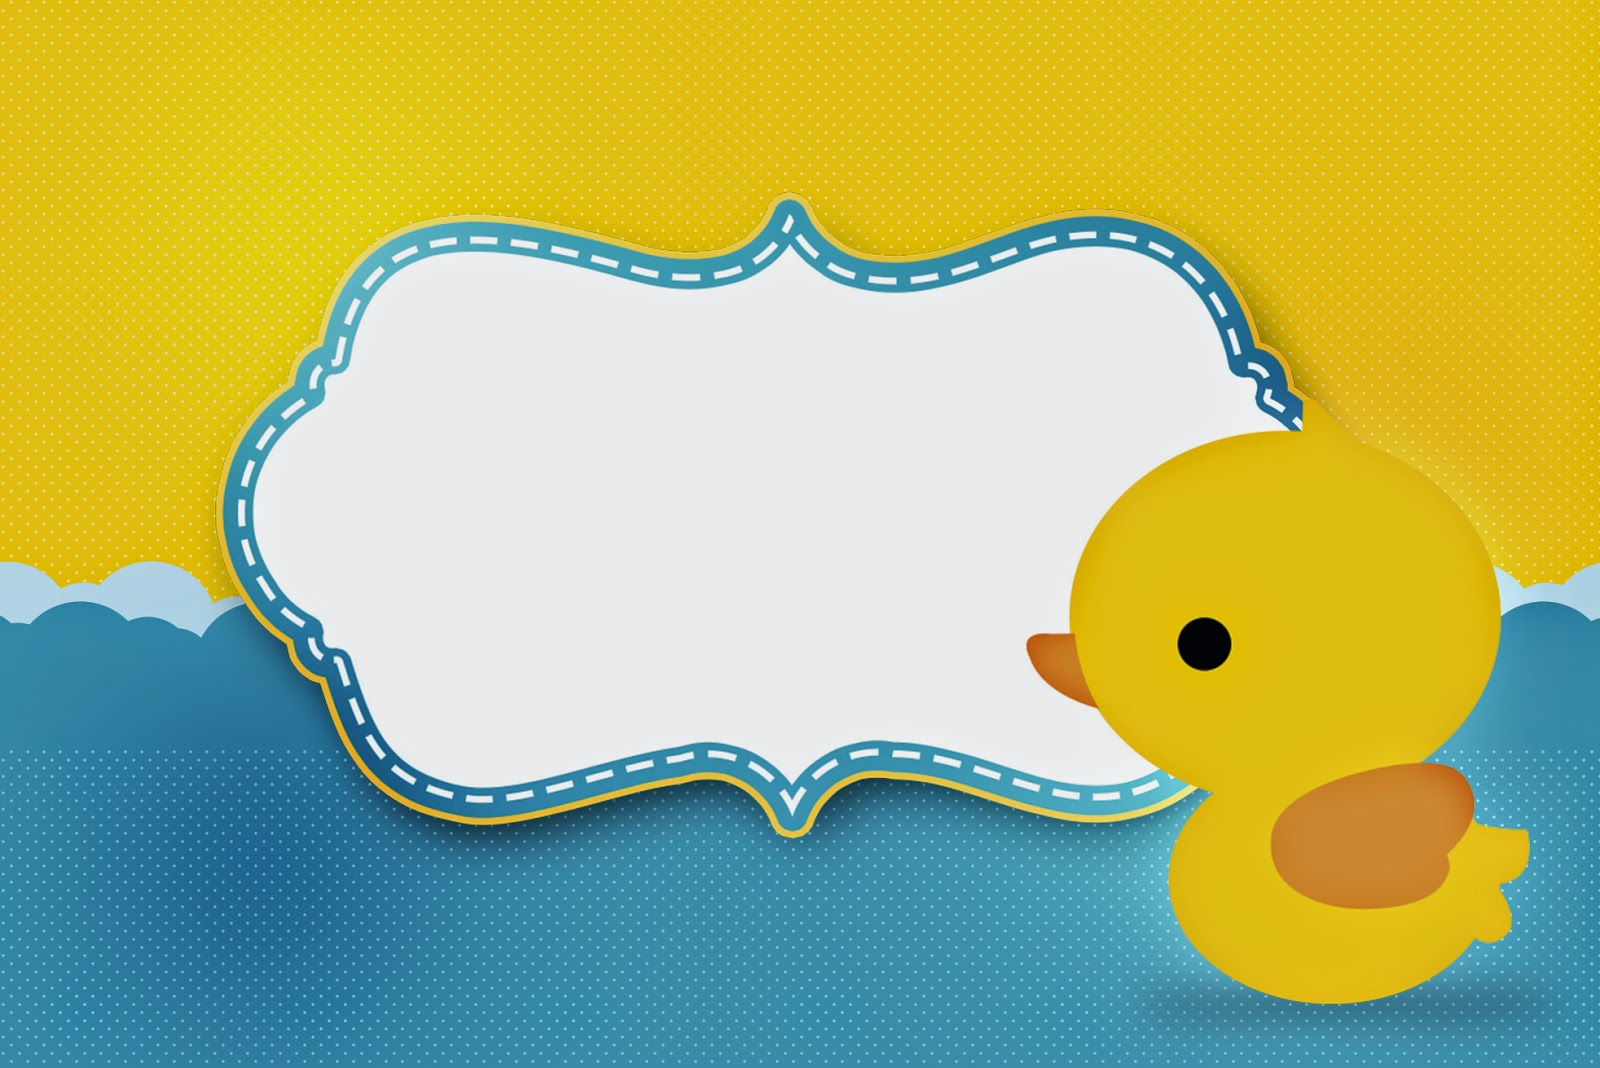 Rubber Ducky: Free Printable Invitations. | Oh My Fiesta! in english